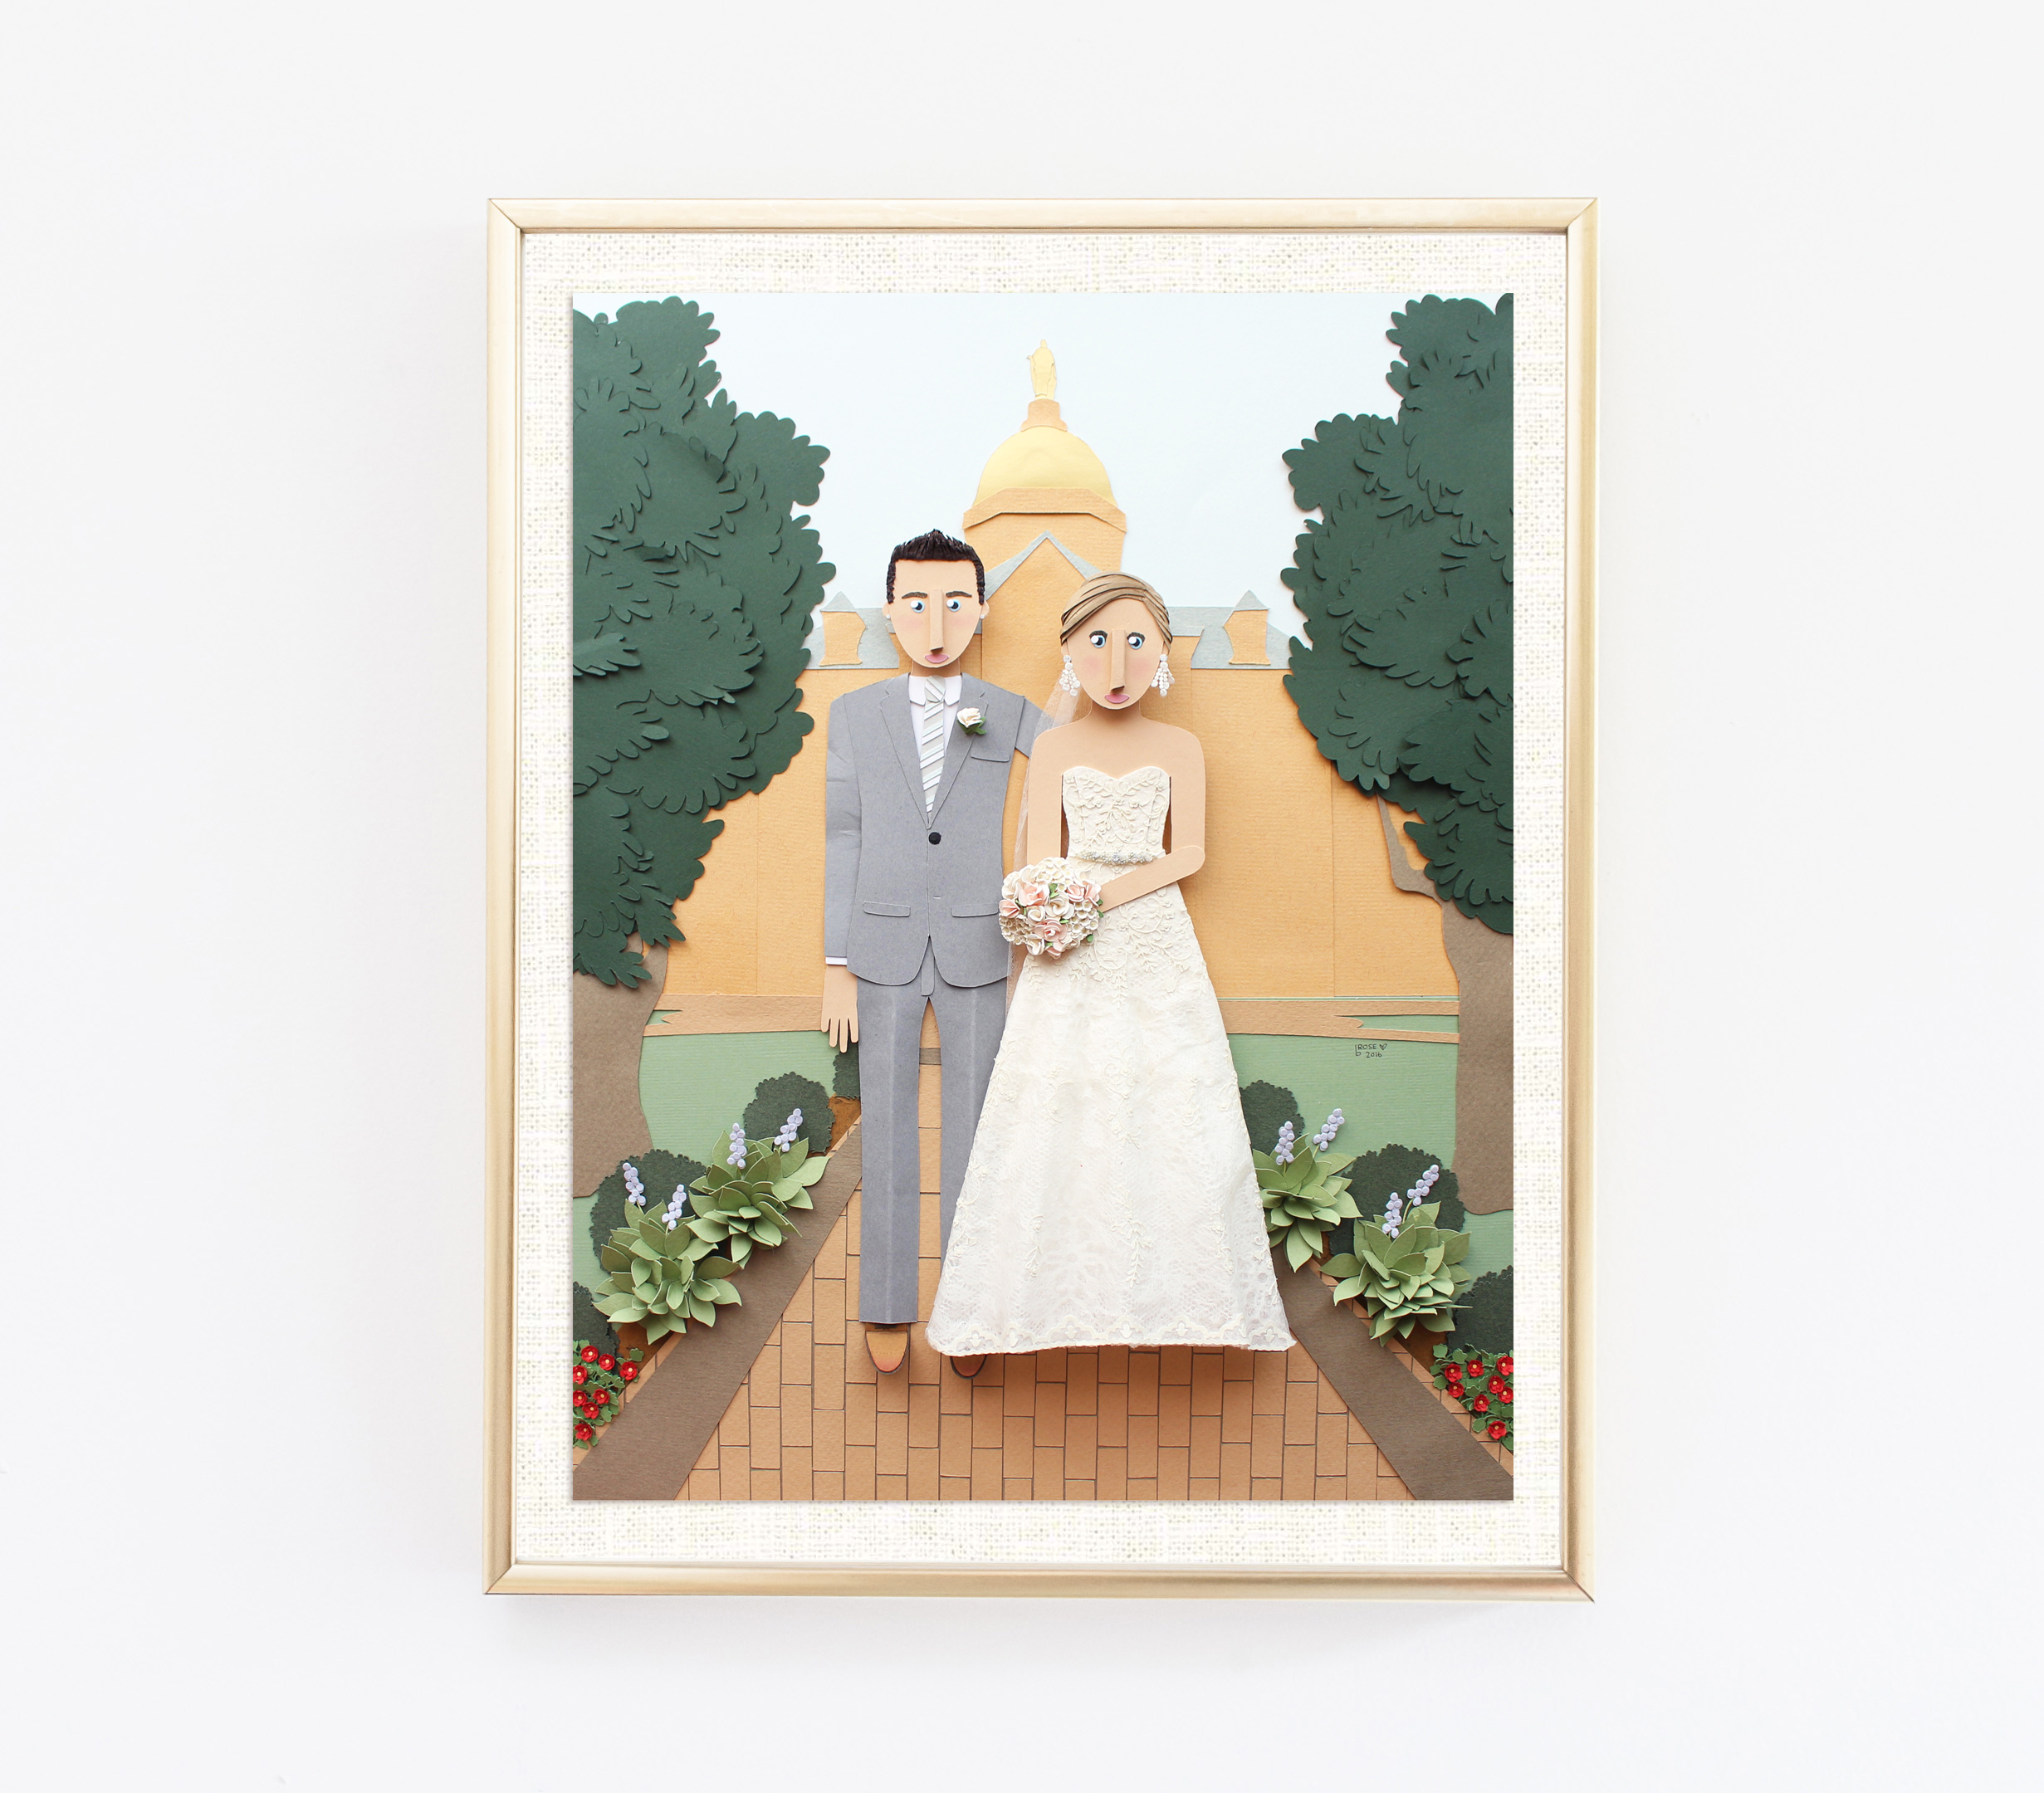 weddingfloatingframe.jpg